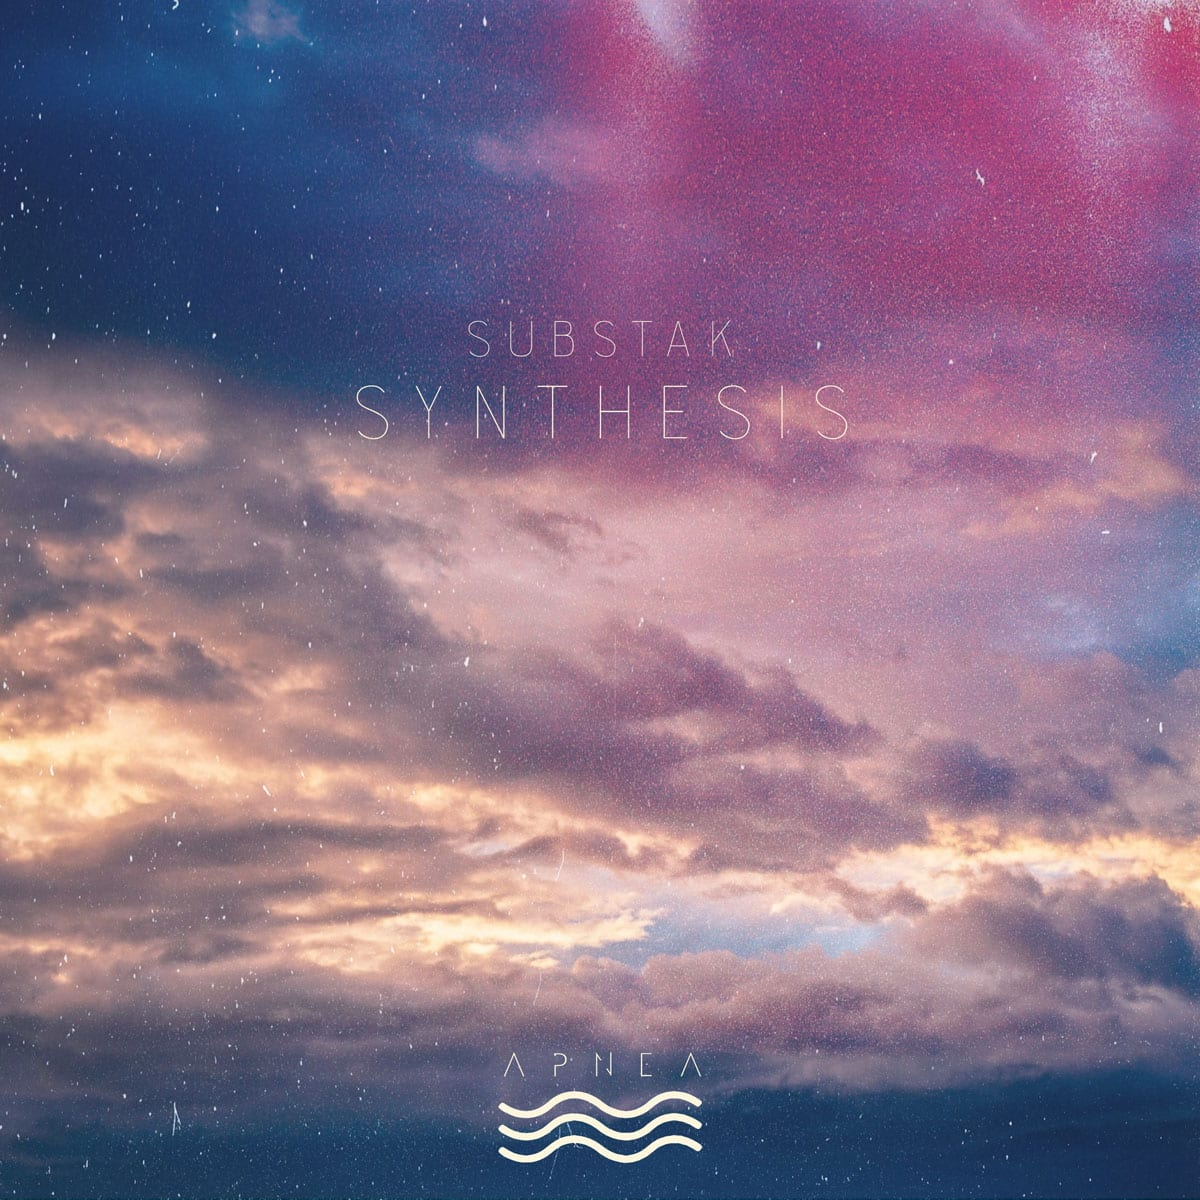 Substak - Synthesis